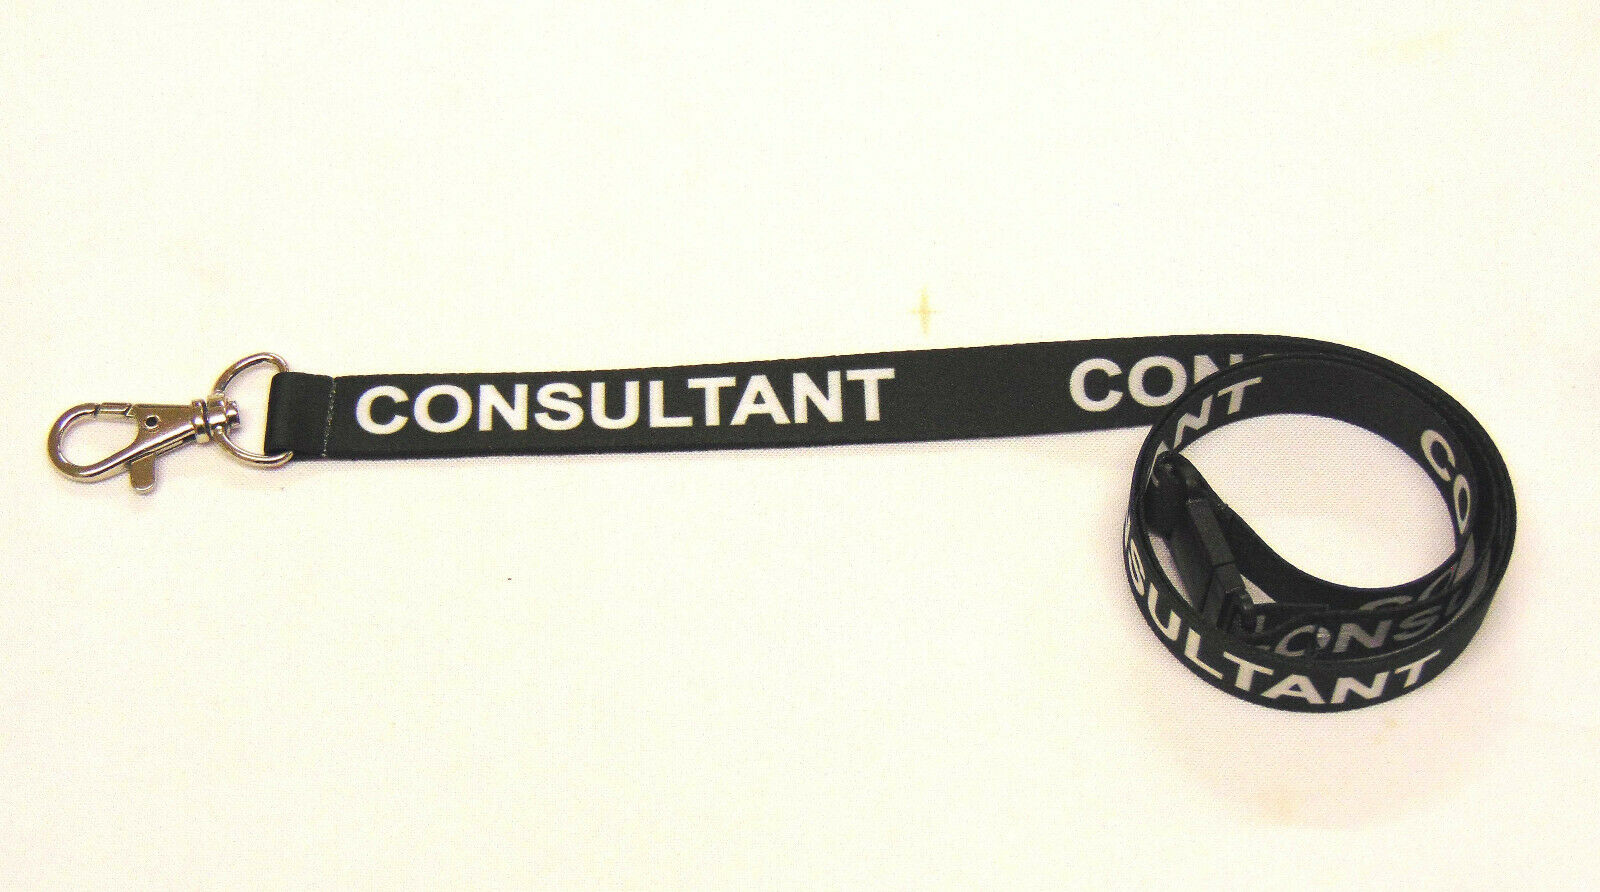 CONSULTANT lanyard black 15mm with safety breakaway for ID & keys. Free UK post.